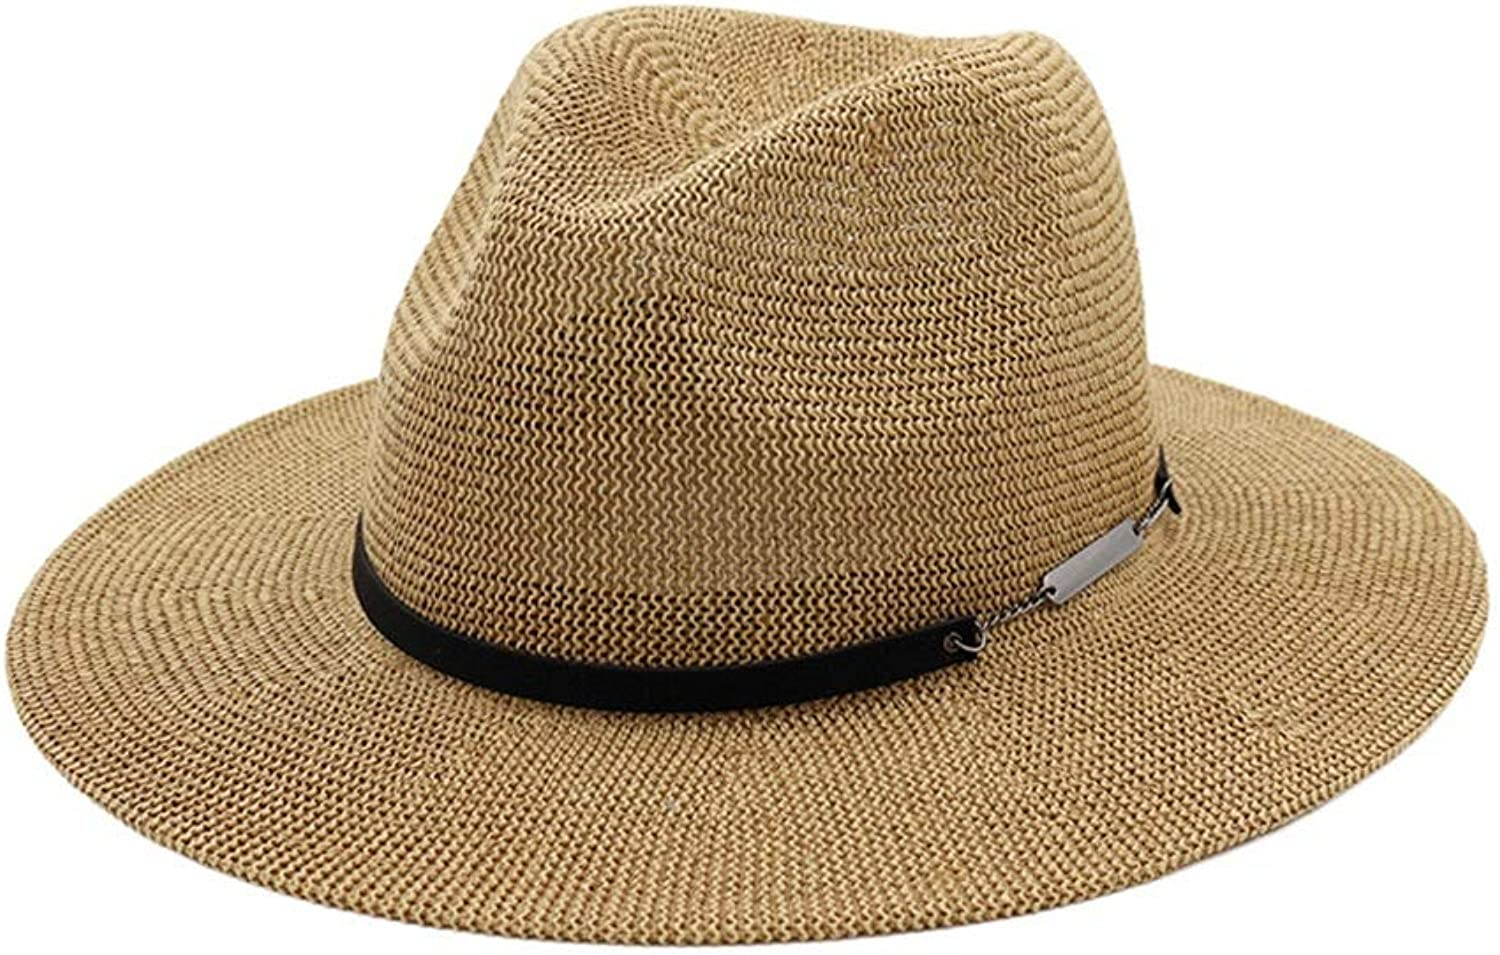 Hat Women's Lightweight Breathable Straw Hat Spring and Summer Sun (color   Coffee)